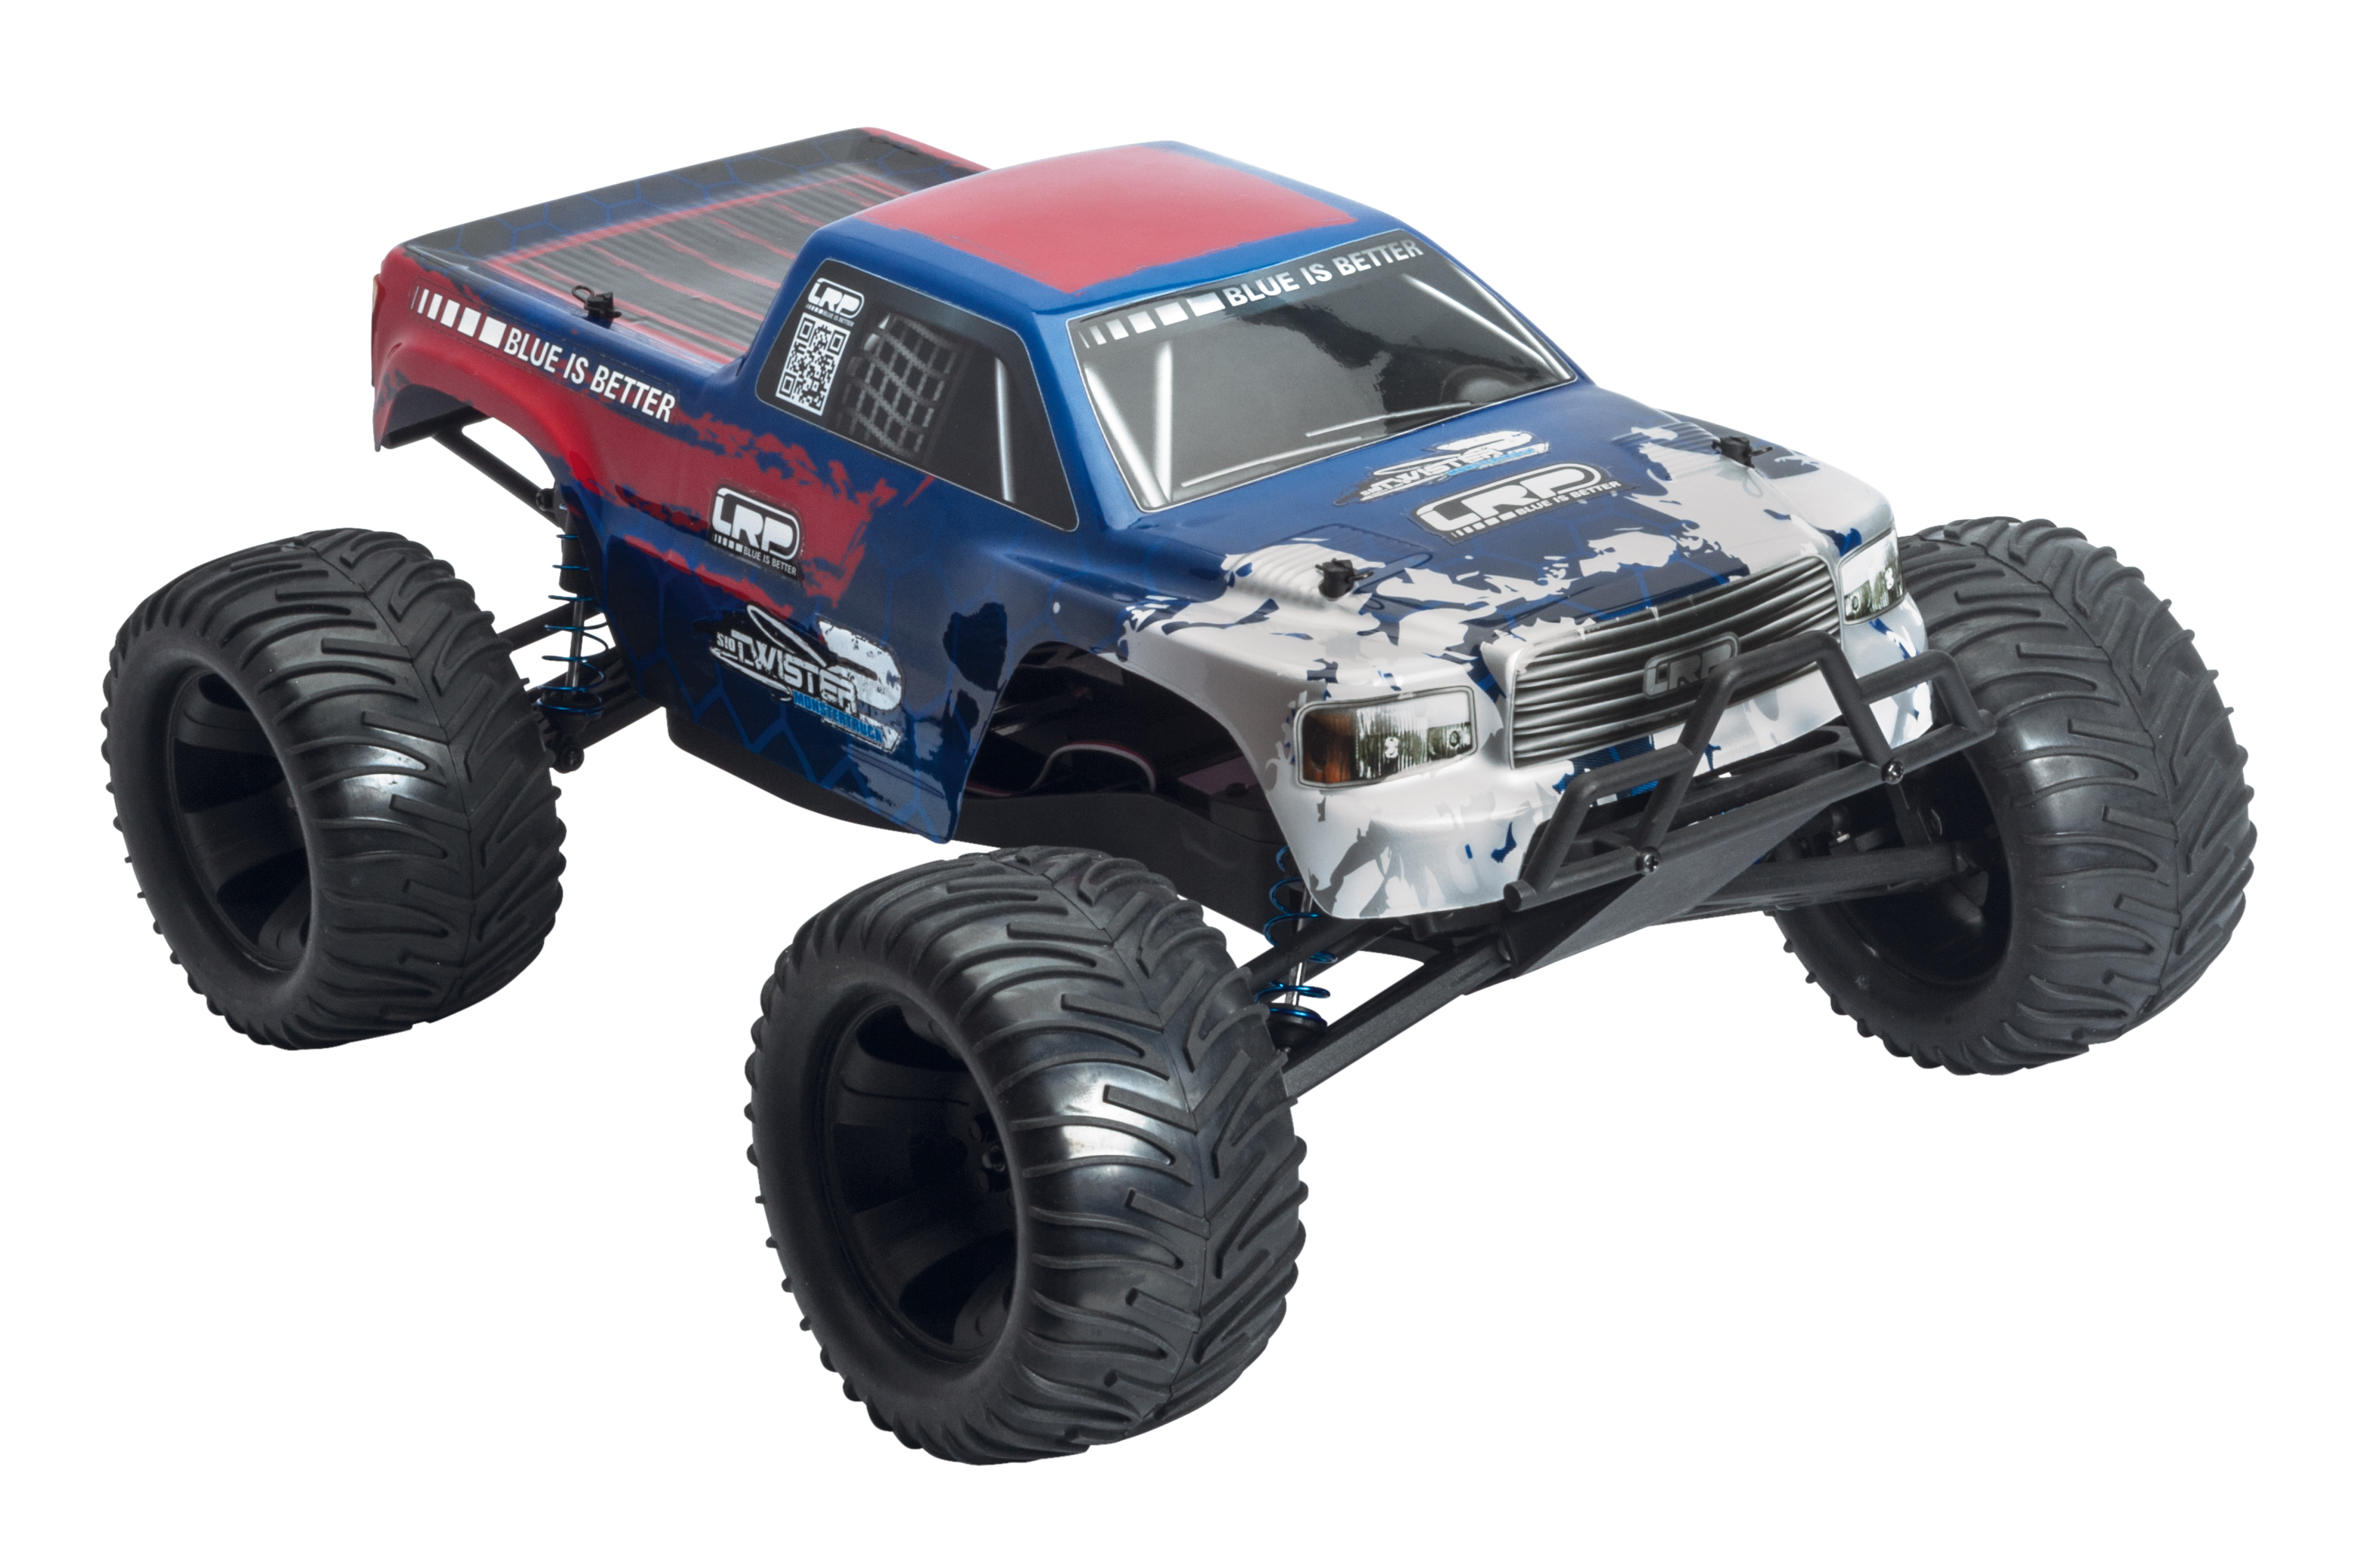 LRP S10 Twister 2 MonsterTruck 2WD 1/10 Electric 2WD 2,4GHz MonsterTruck RTR 120811